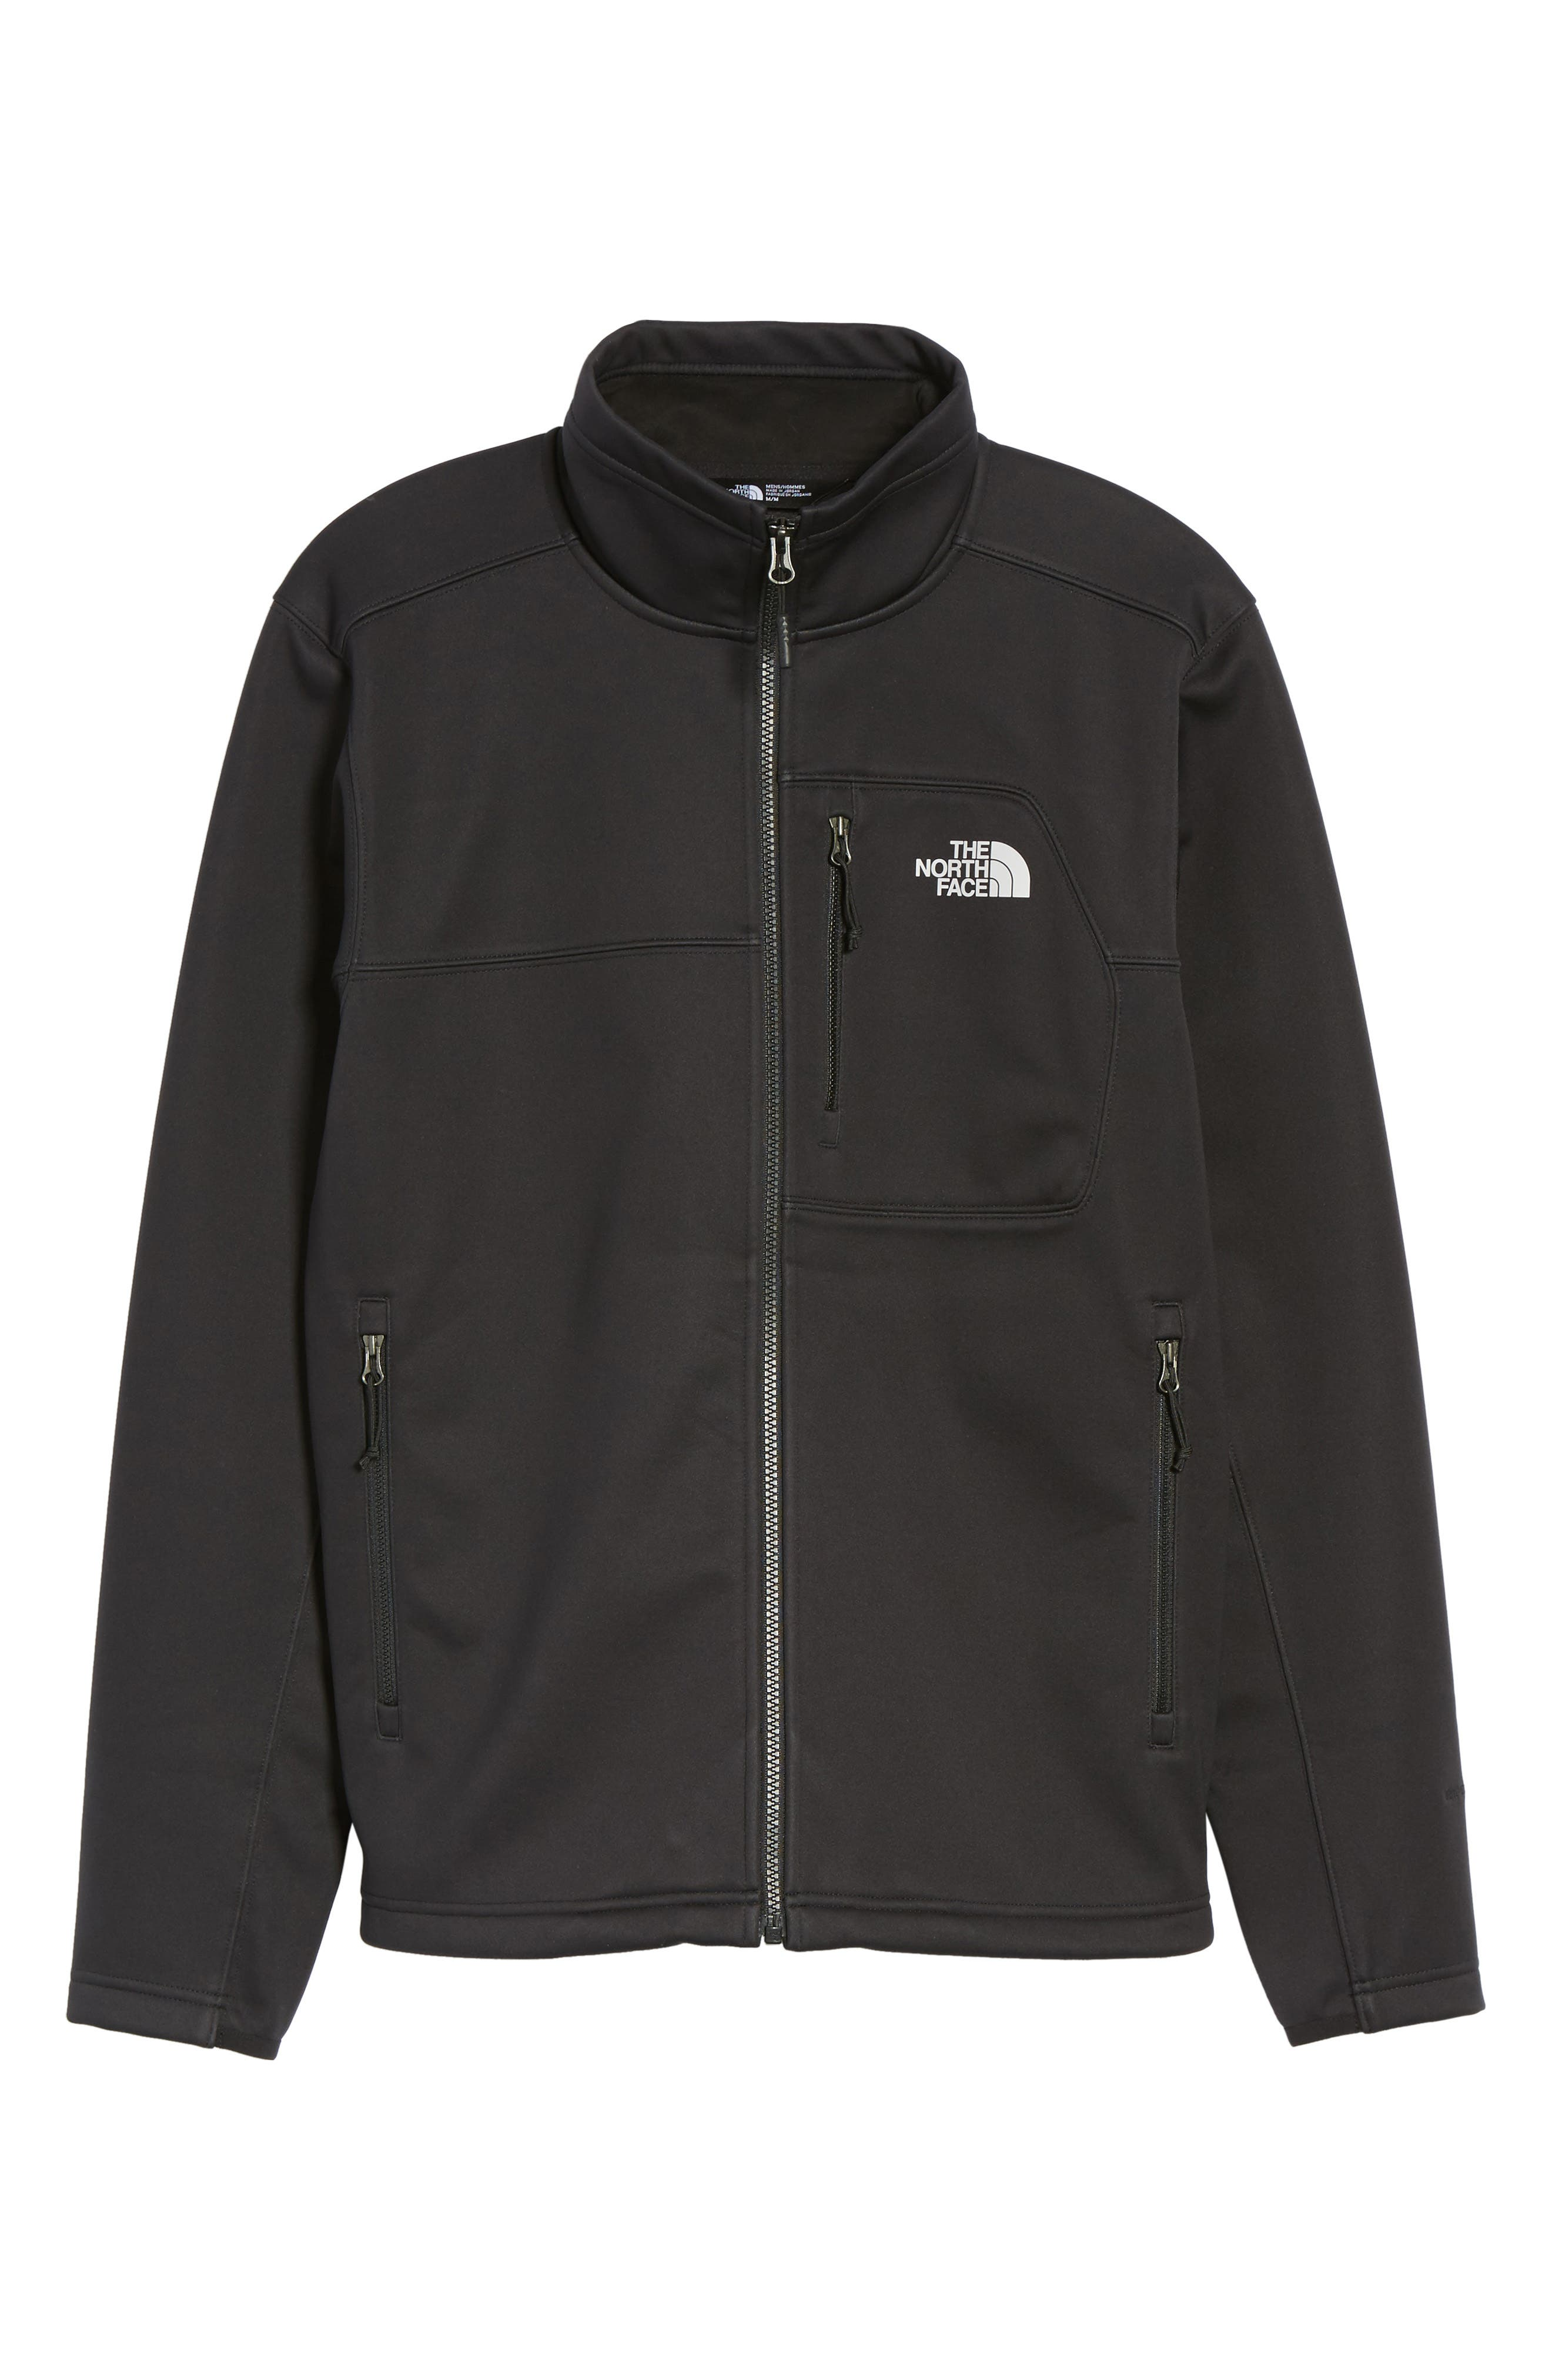 Apex Risor Jacket,                             Alternate thumbnail 6, color,                             Black/ Black